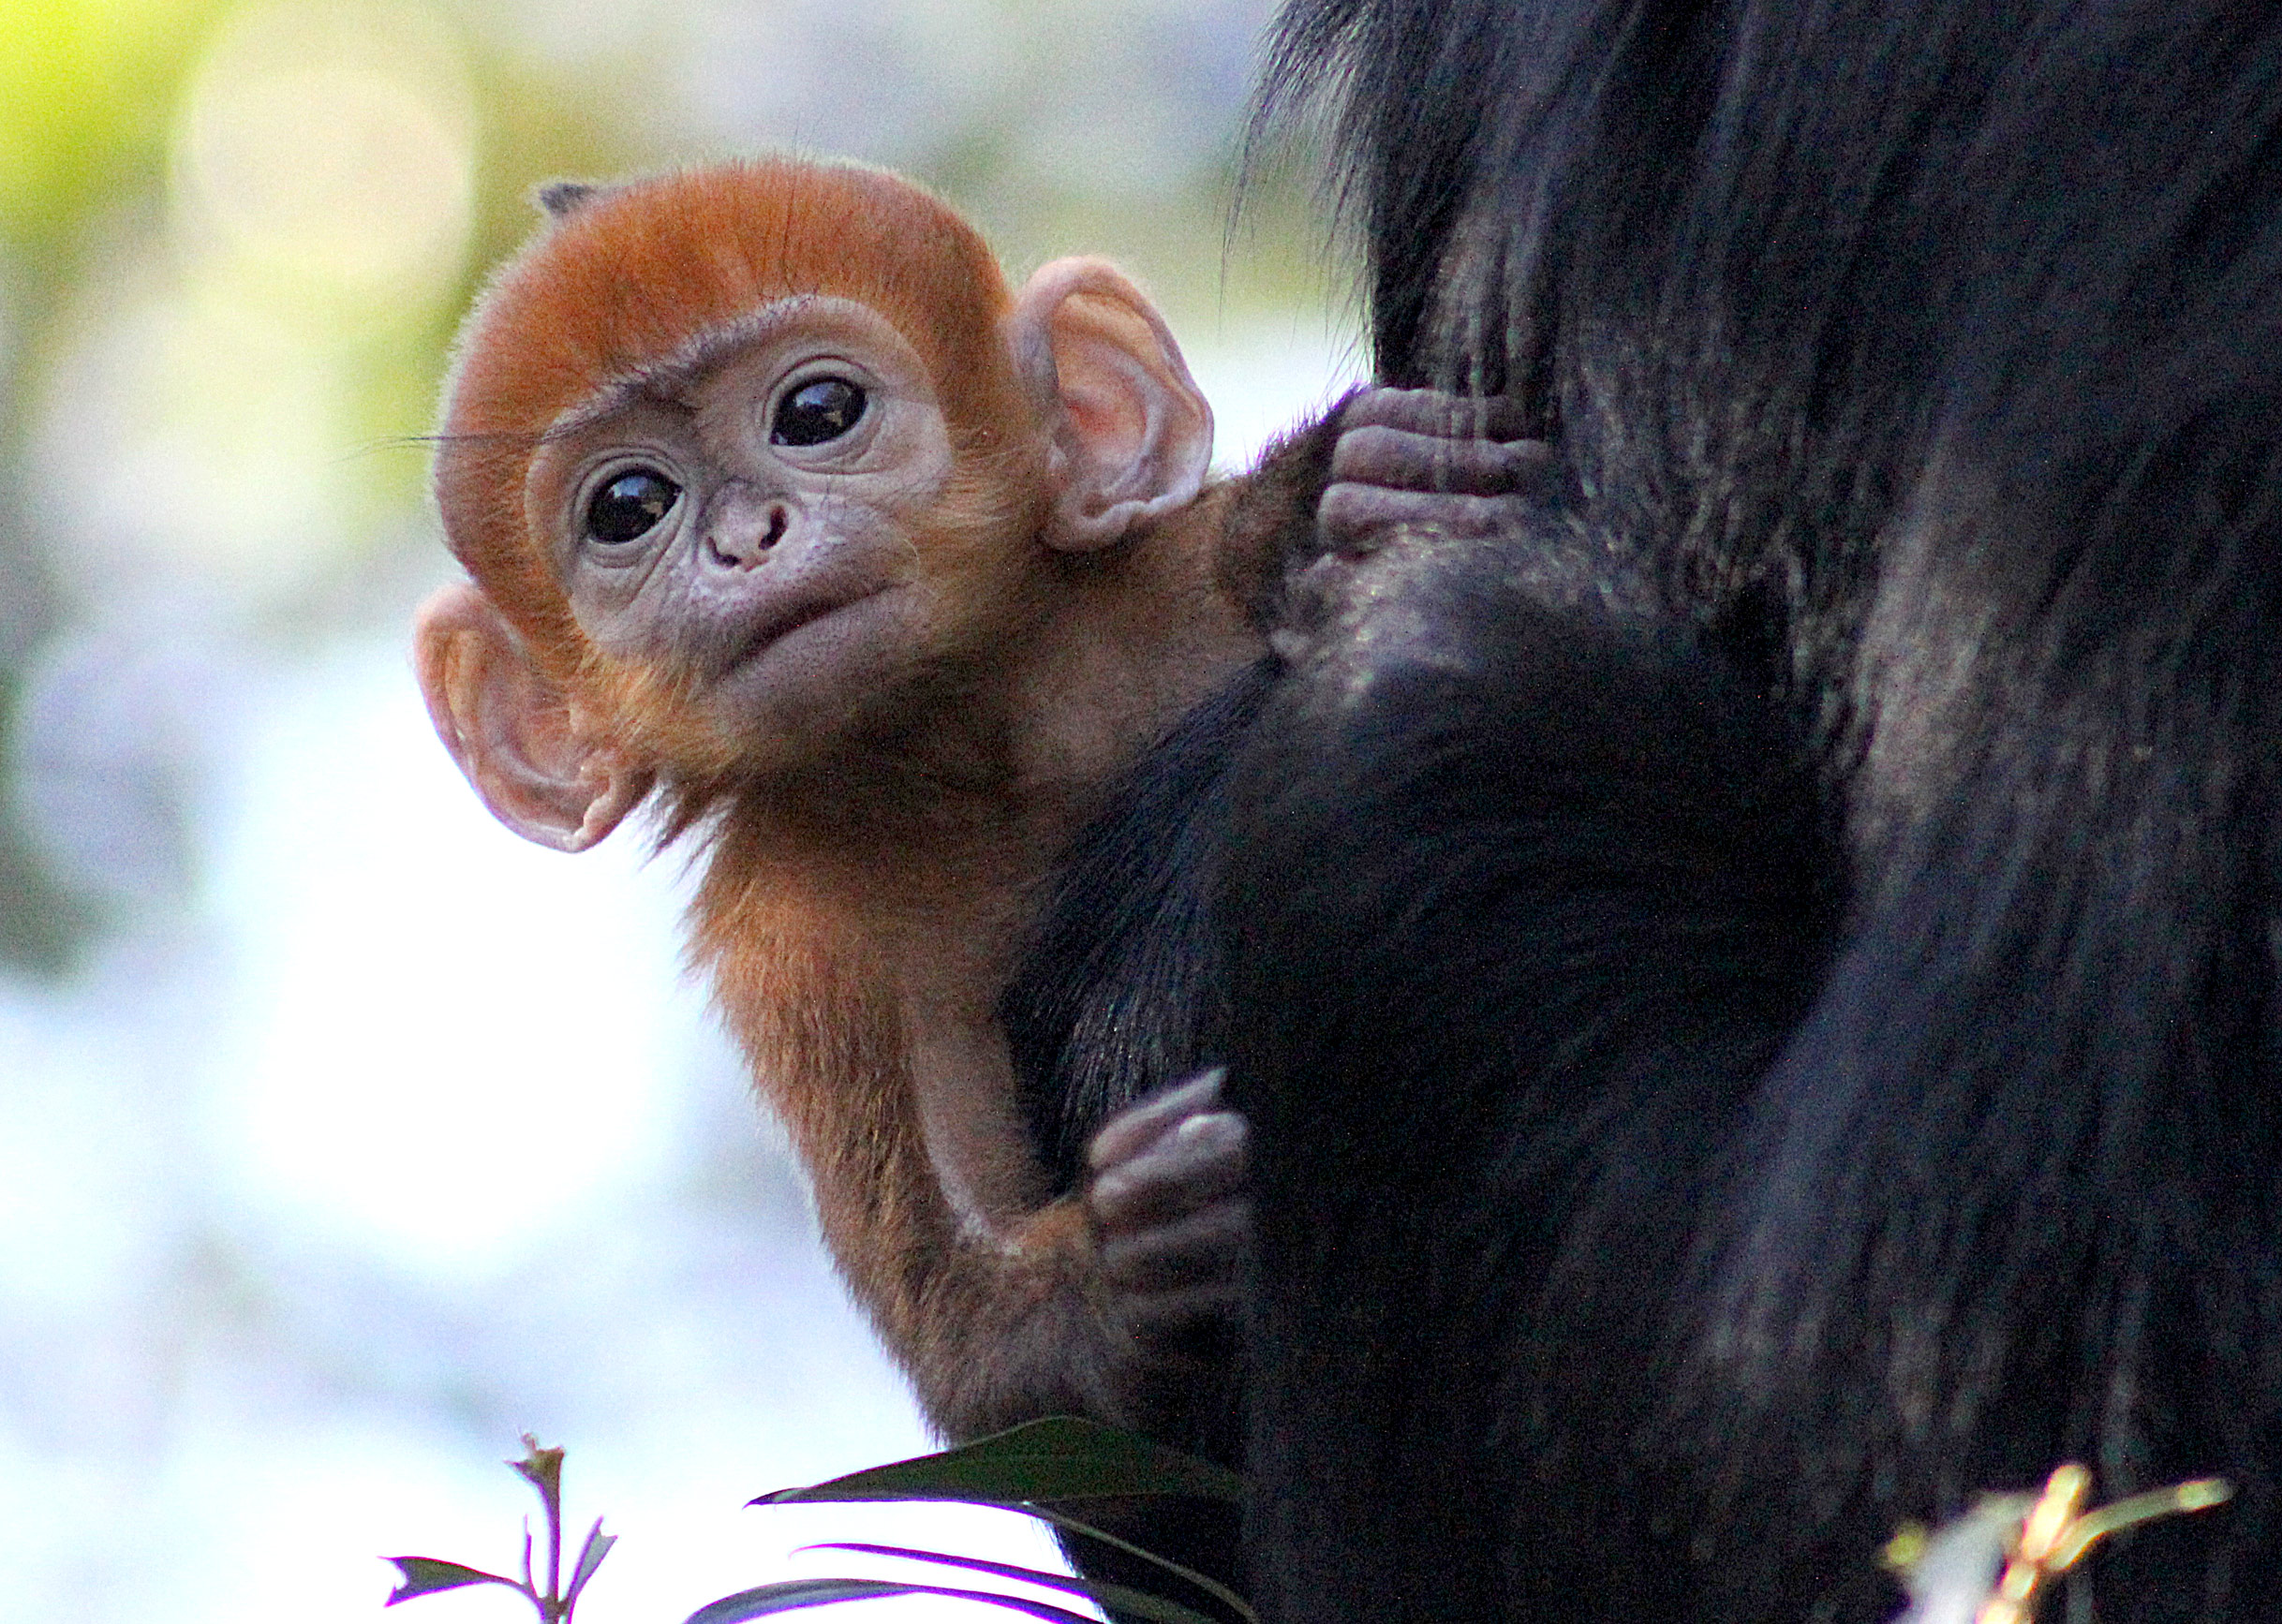 OMG: Absurdly cute ginger monkey born at Taronga Zoo - 9Pickle